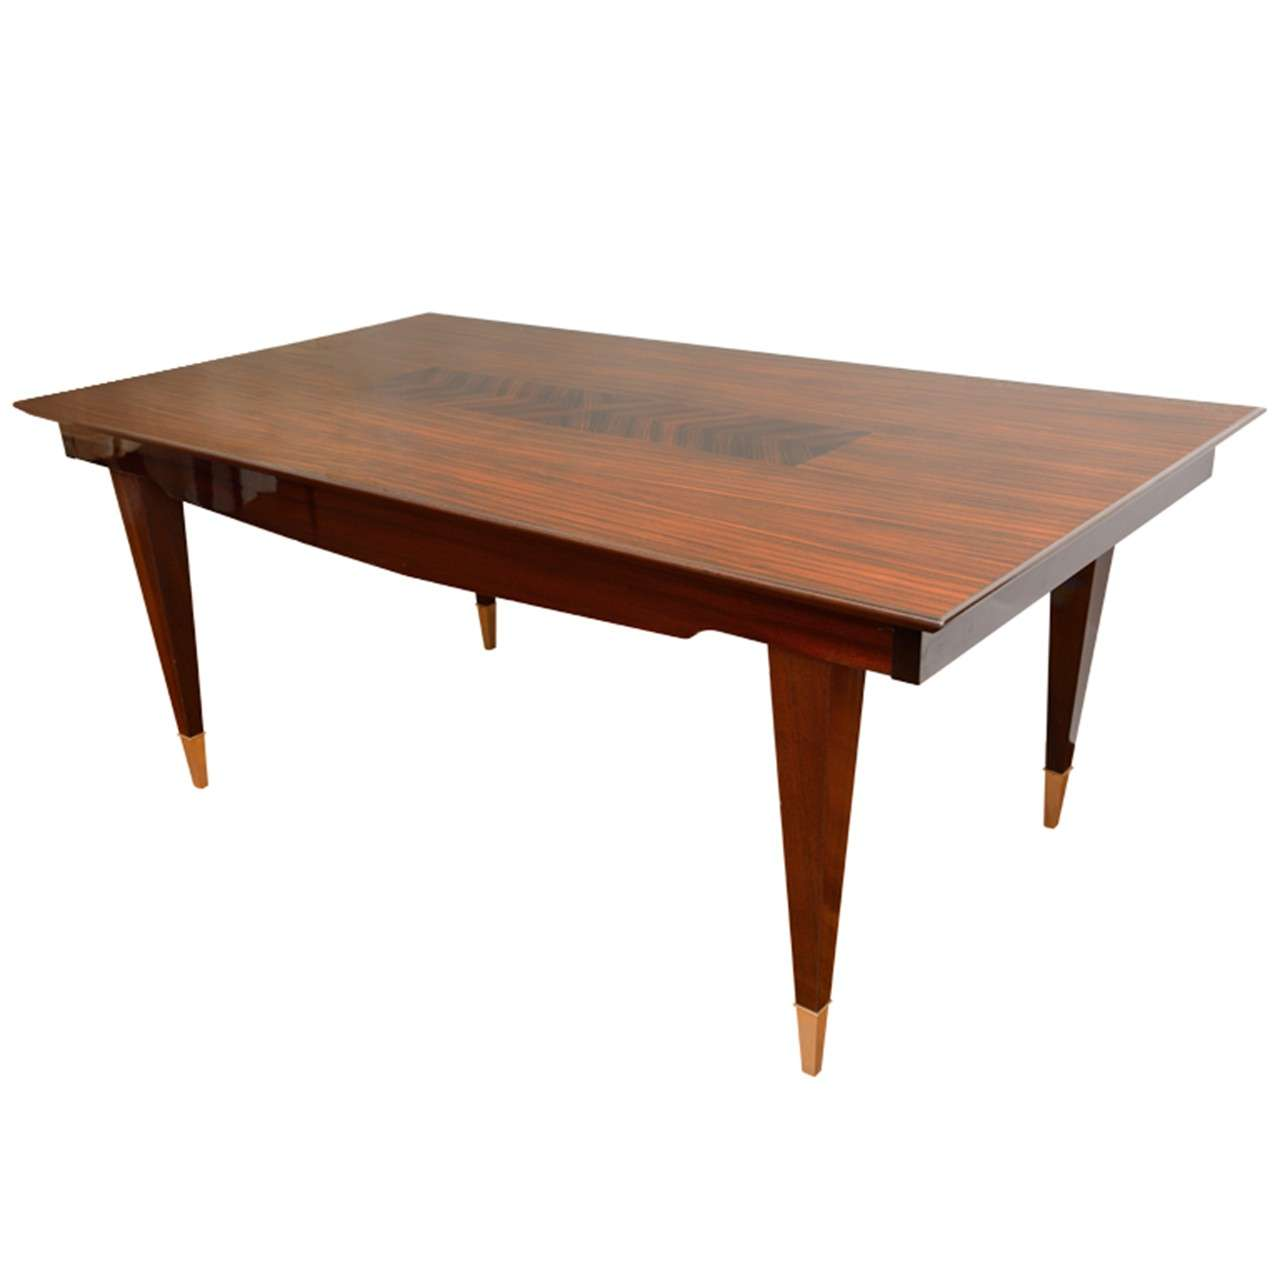 French art deco dining table at 1stdibs for French dining table